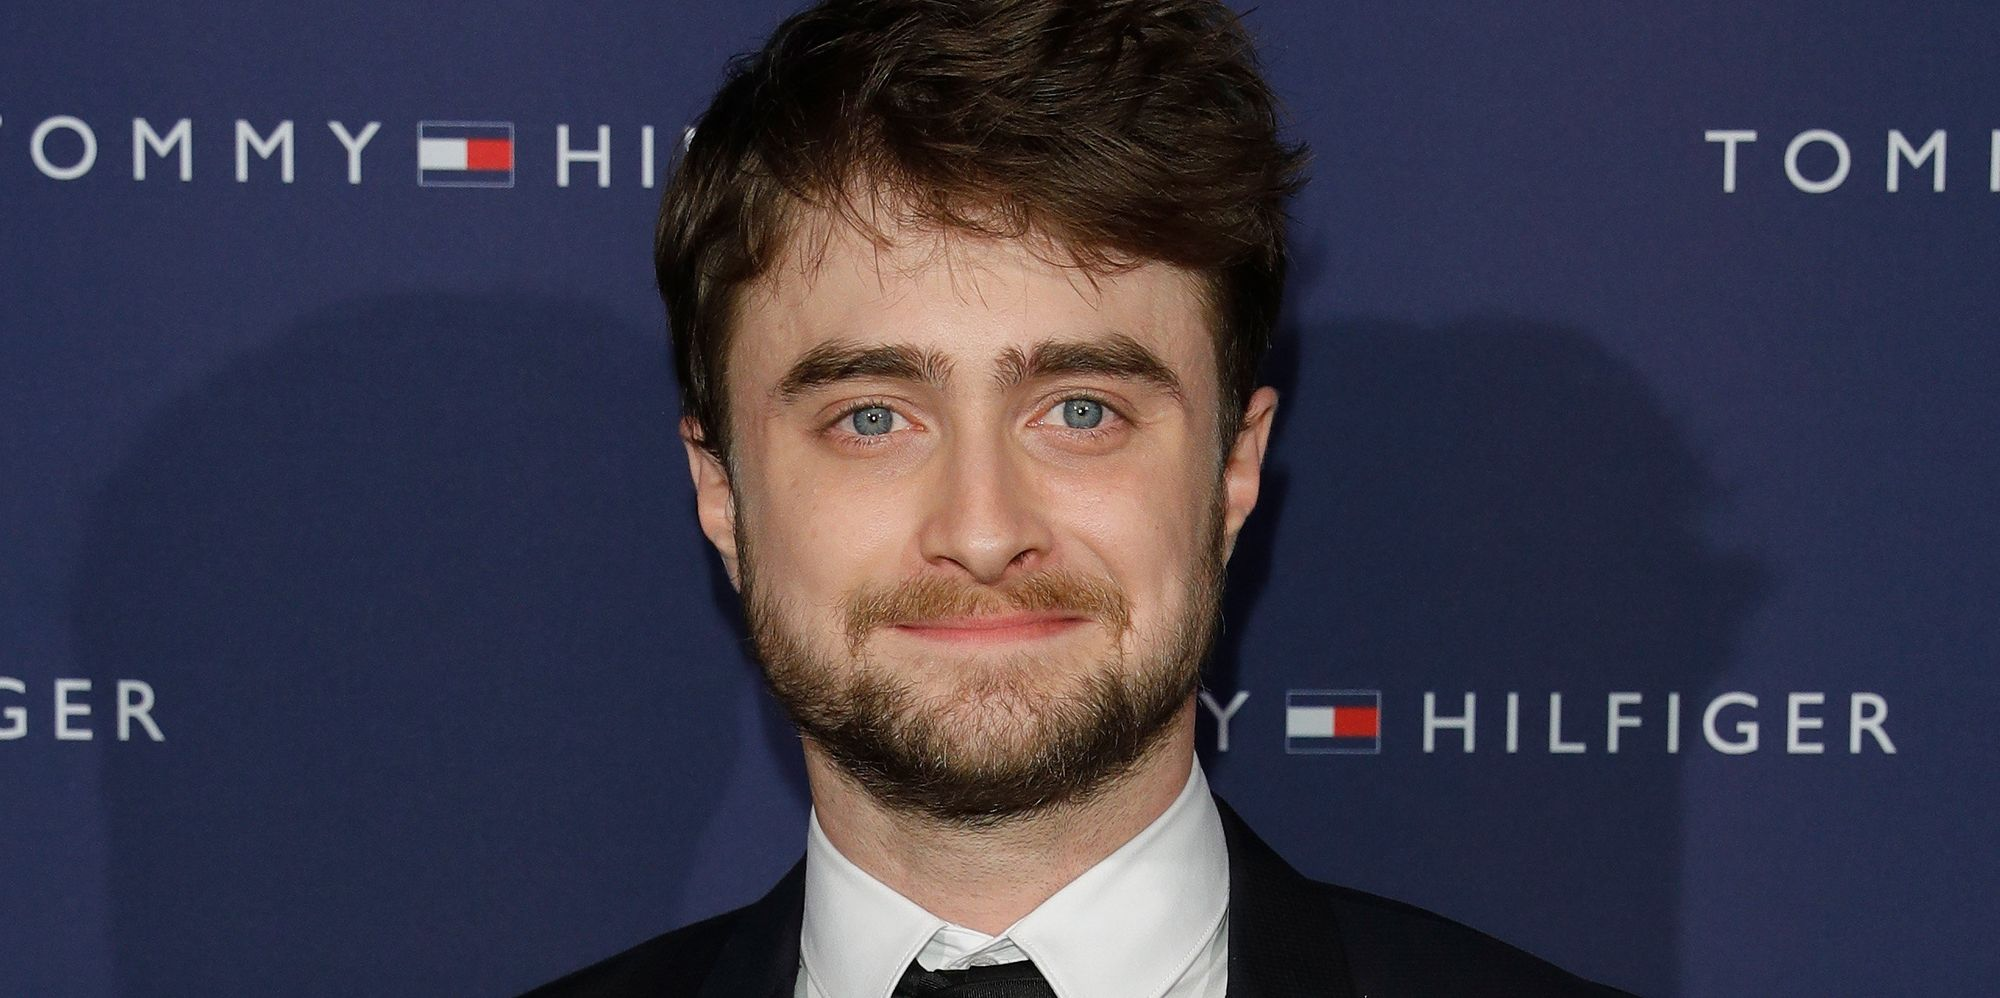 Donald Trump Gave Daniel Radcliffe Some Not-So-Magical Advice